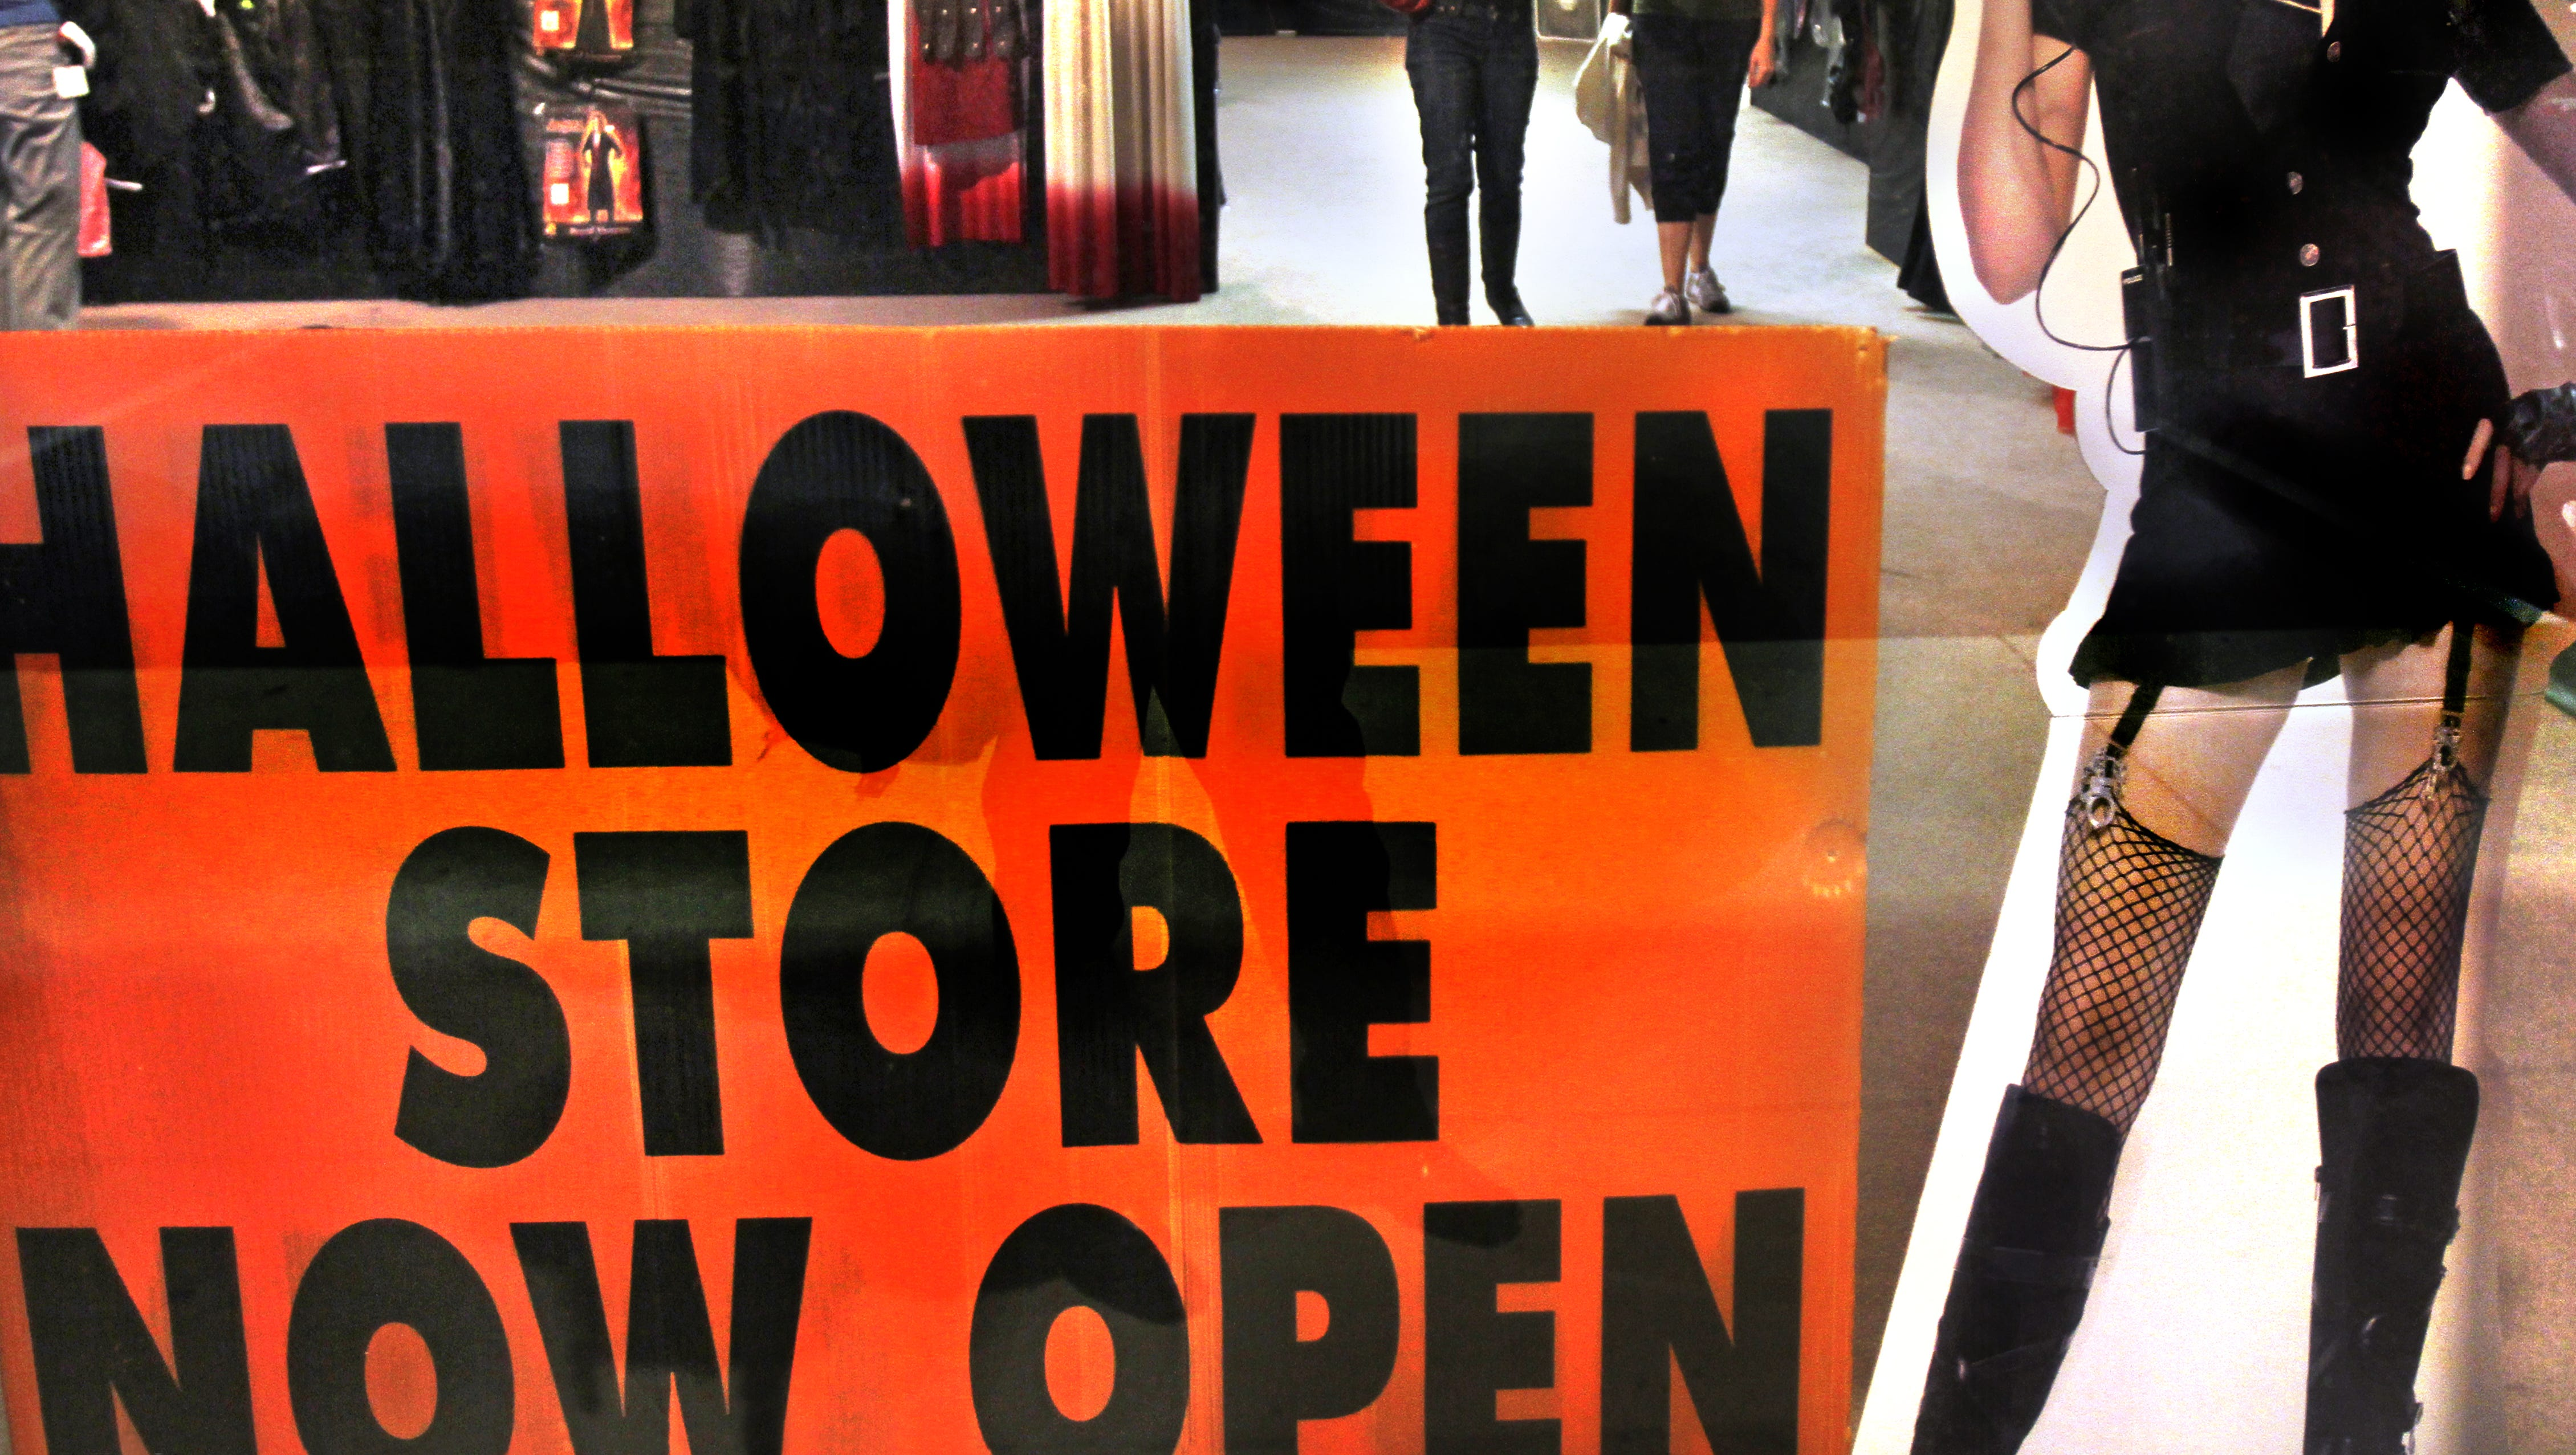 halloween stores in indianapolis: where to find costumes, decorations